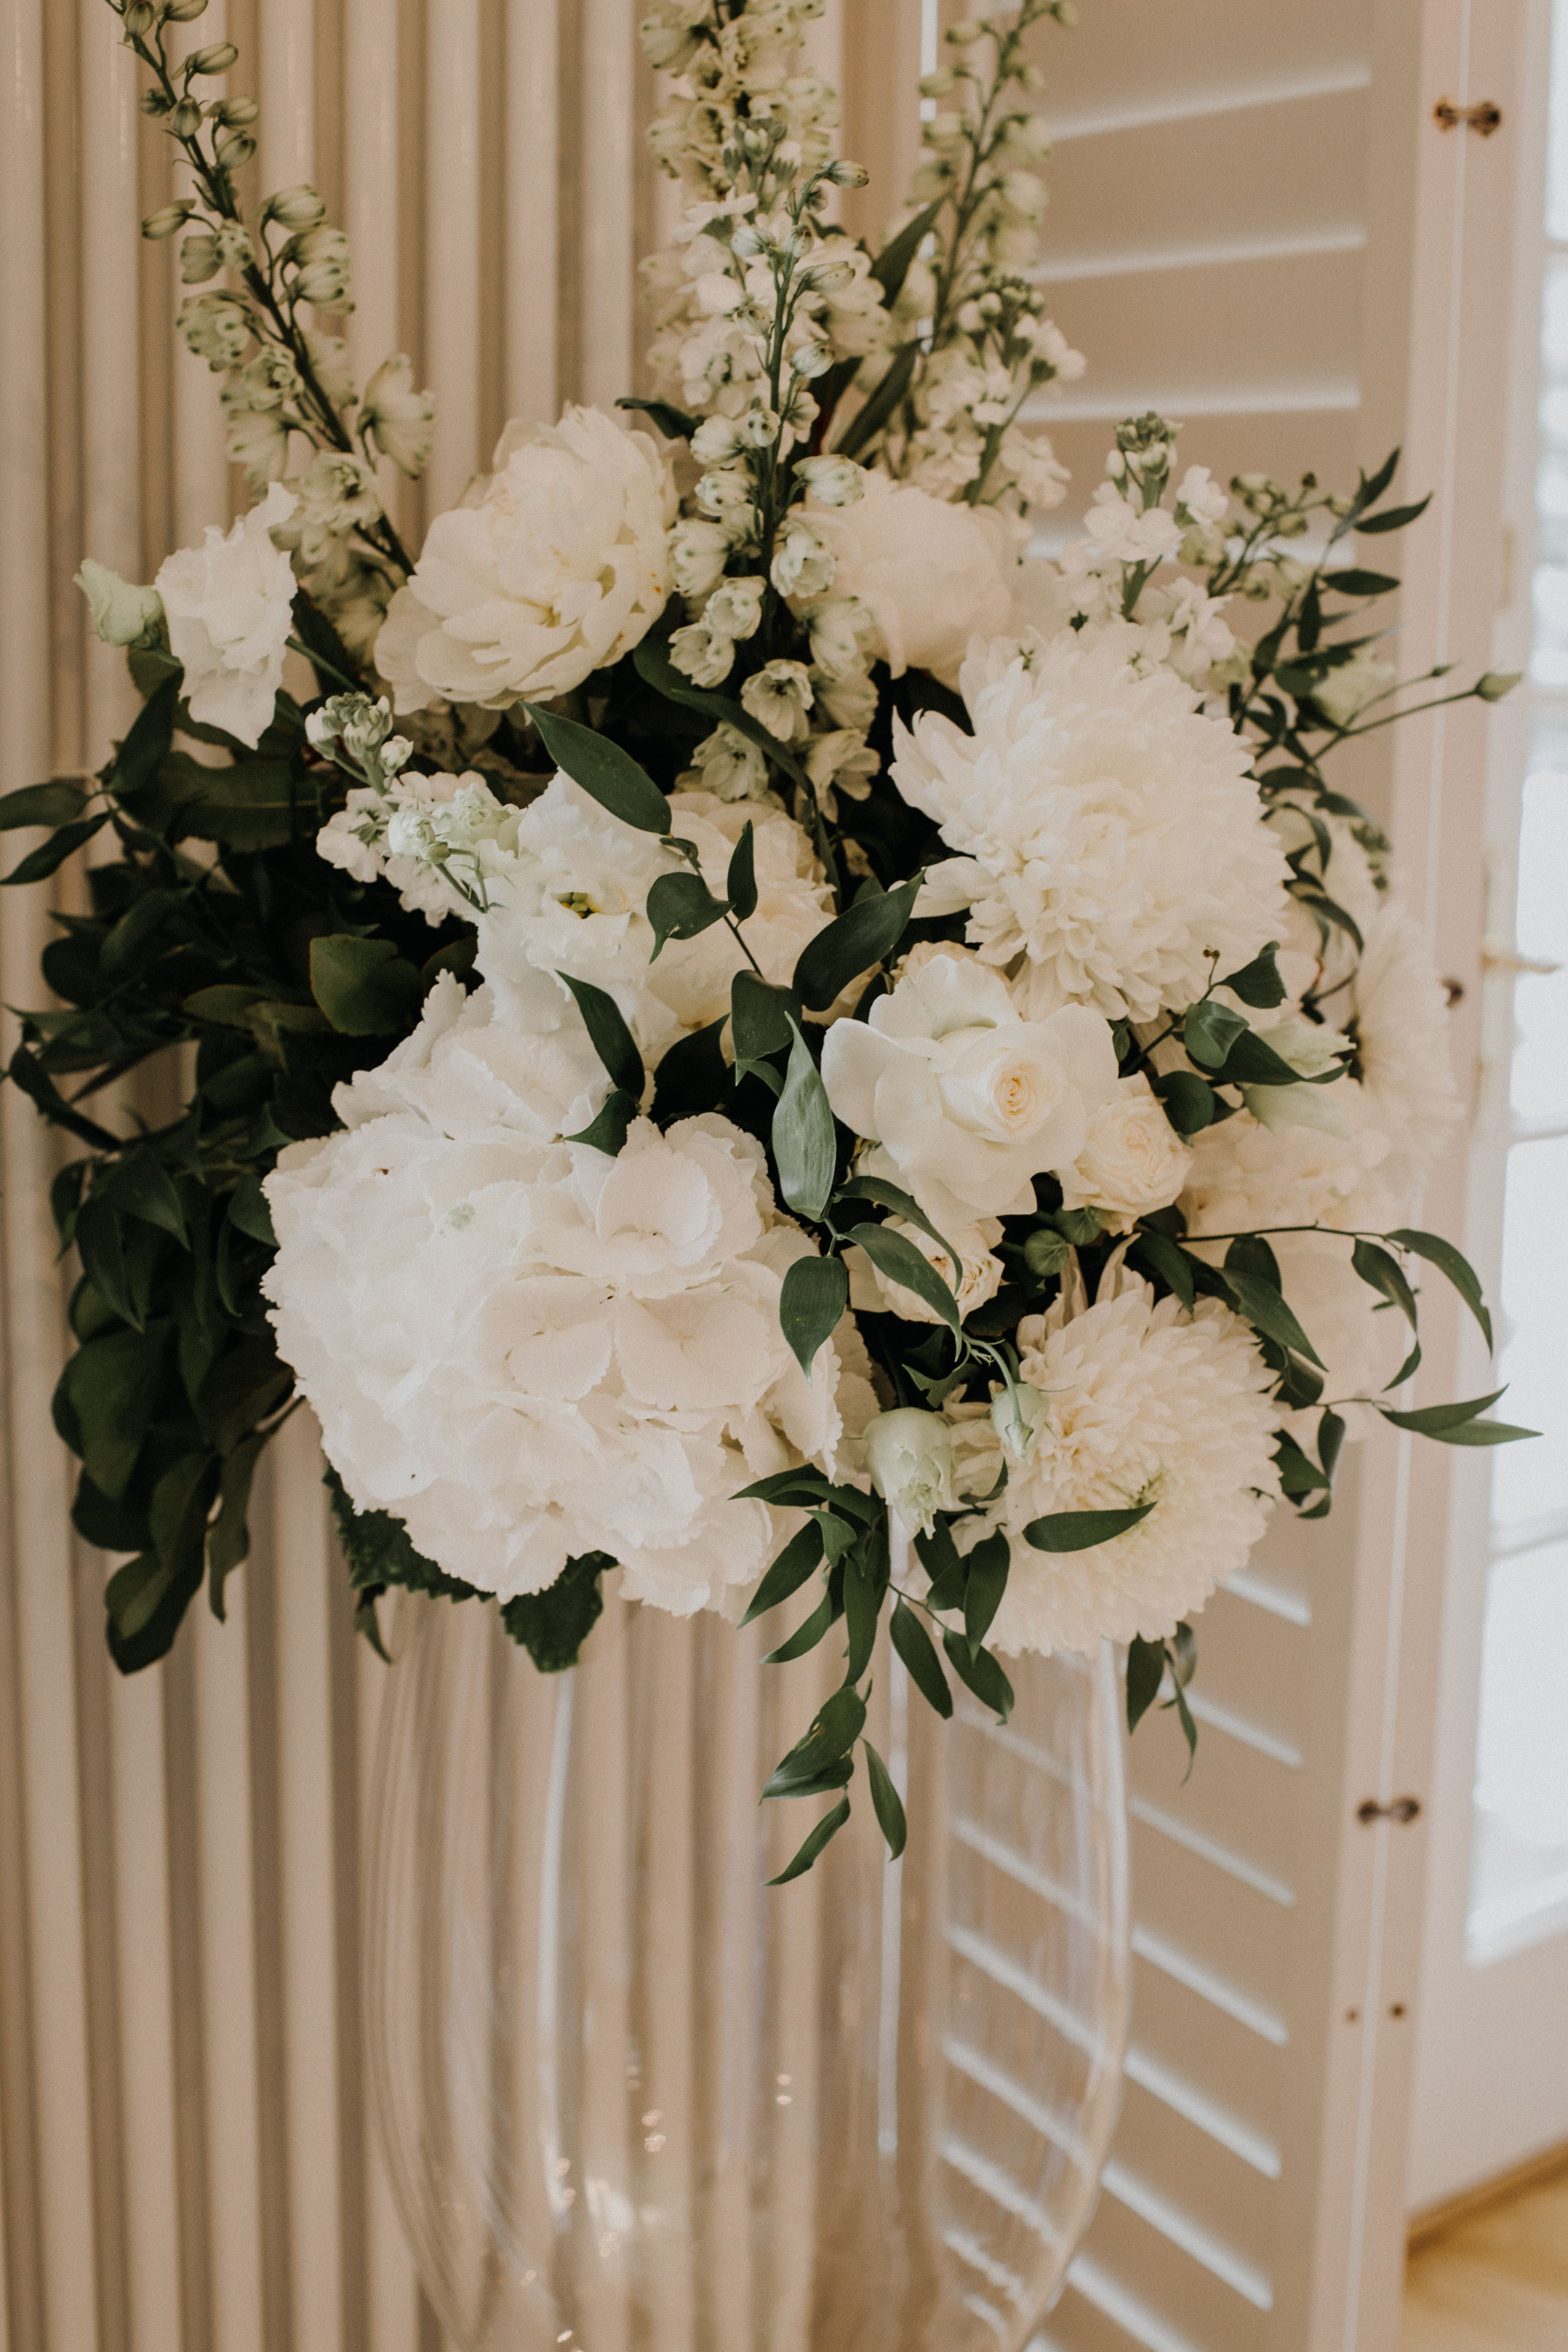 Inna Studio Composition Of White And Green Flowers Decoration For A Wedding Flowers For A Couple Ele Home Wedding Decorations Wedding Decorations Home Wedding